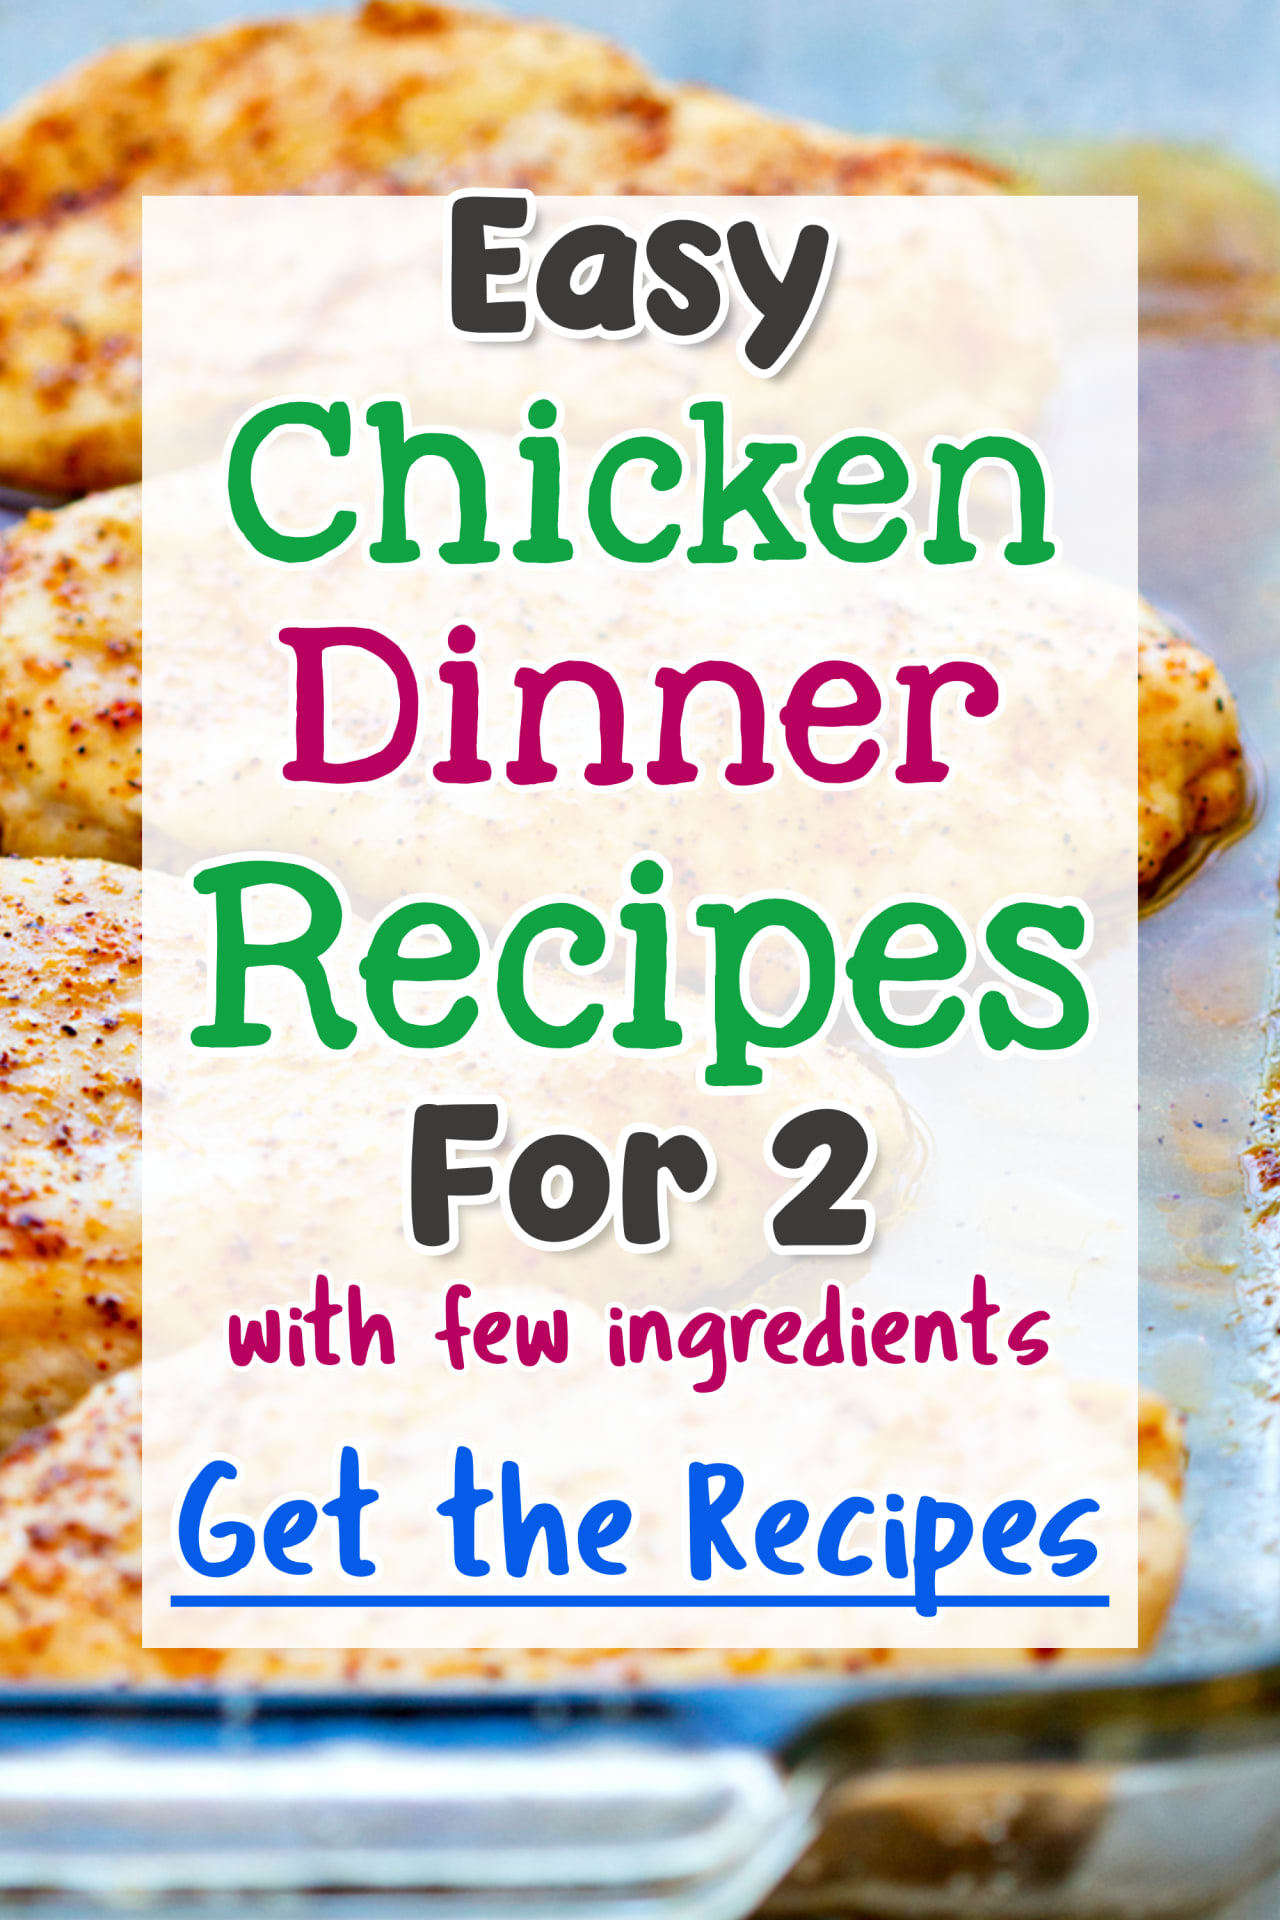 Easy Chicken Dinner Recipes For Two with few ingredients - simple chicken recipes for dinner tonight for 2 people.  Frugal chicken recipes for cooking on a budget...